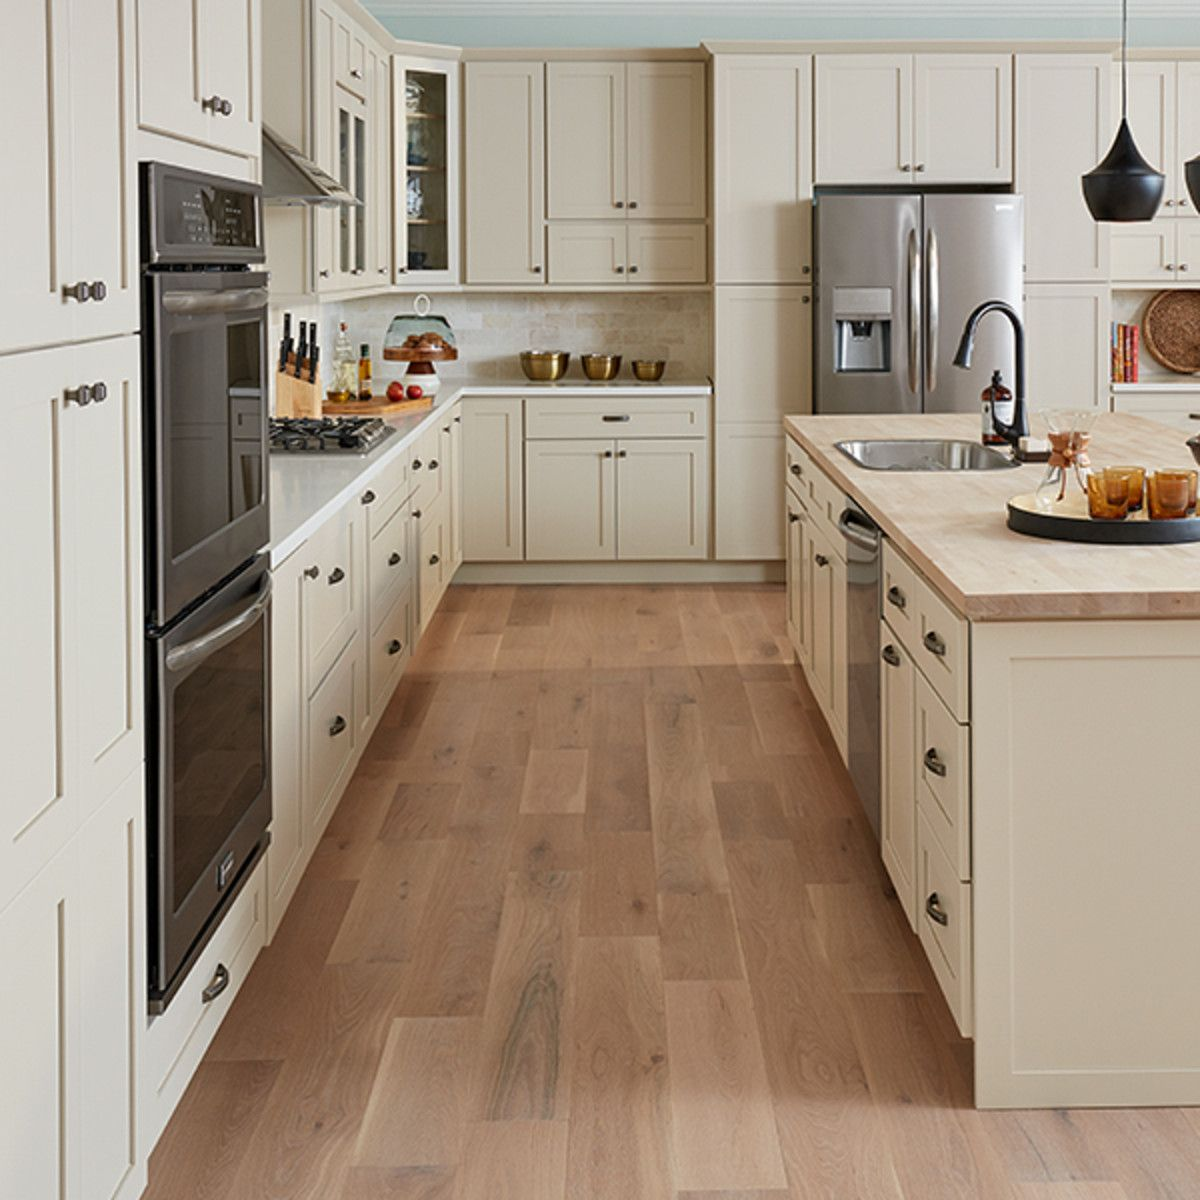 Cabinets To Go Shaker Nantucket Color In 2020 Cabinets To Go Kitchen Cabinet Samples Shaker Cabinets